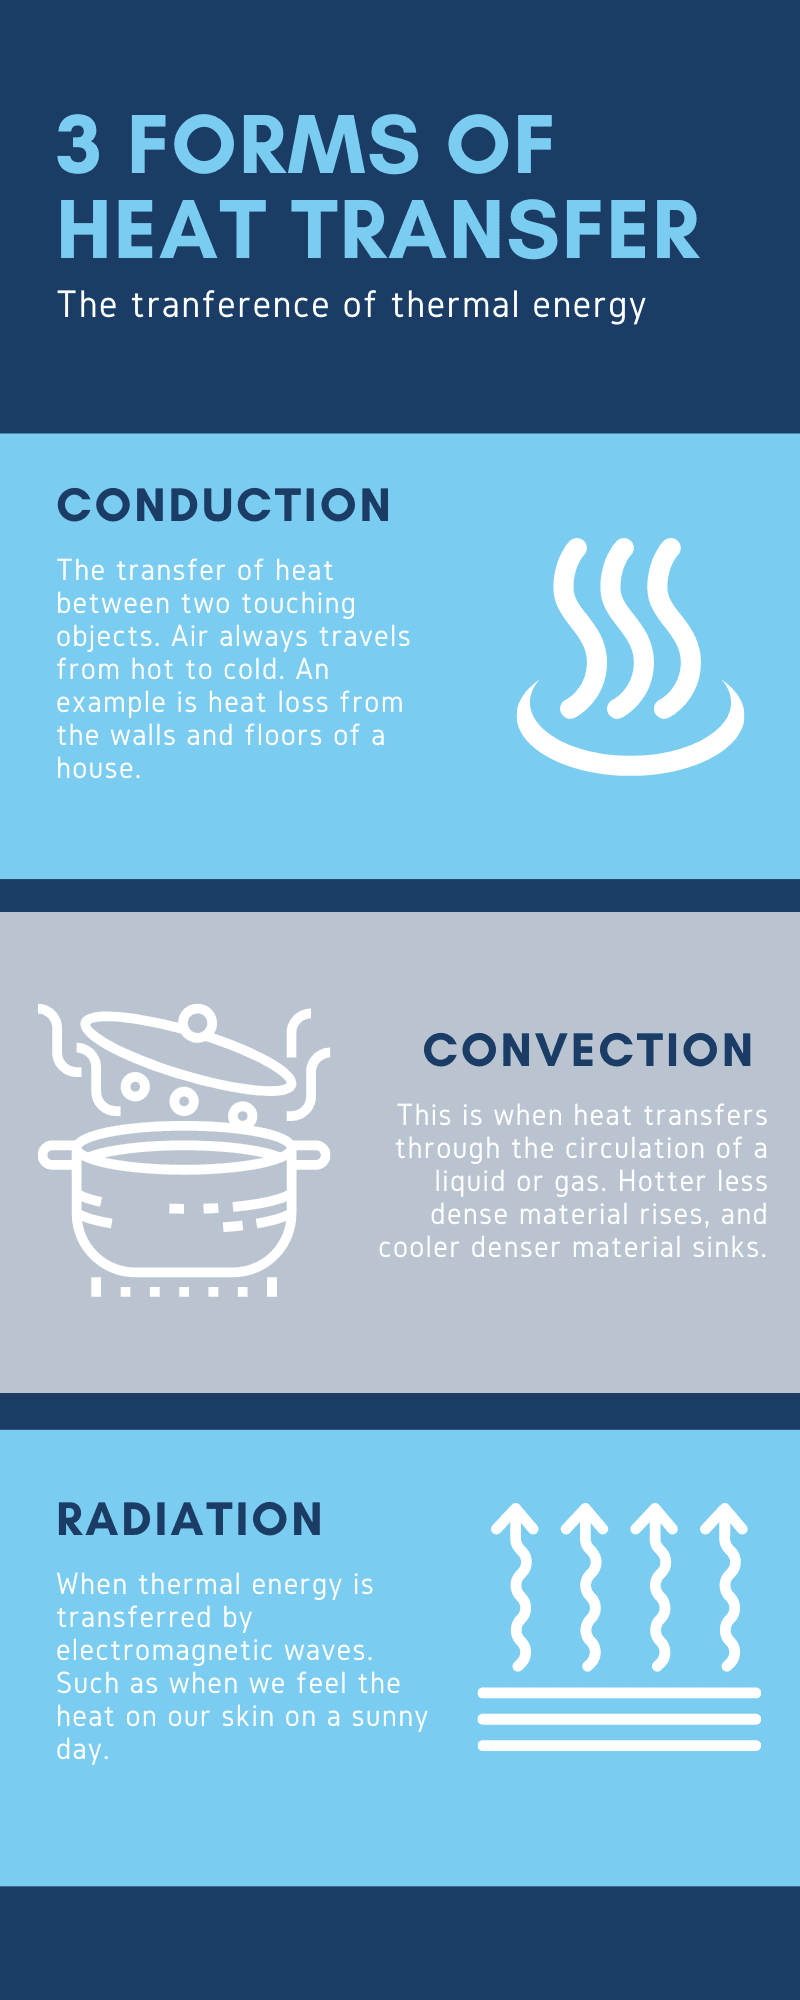 3 forms of heat transfer